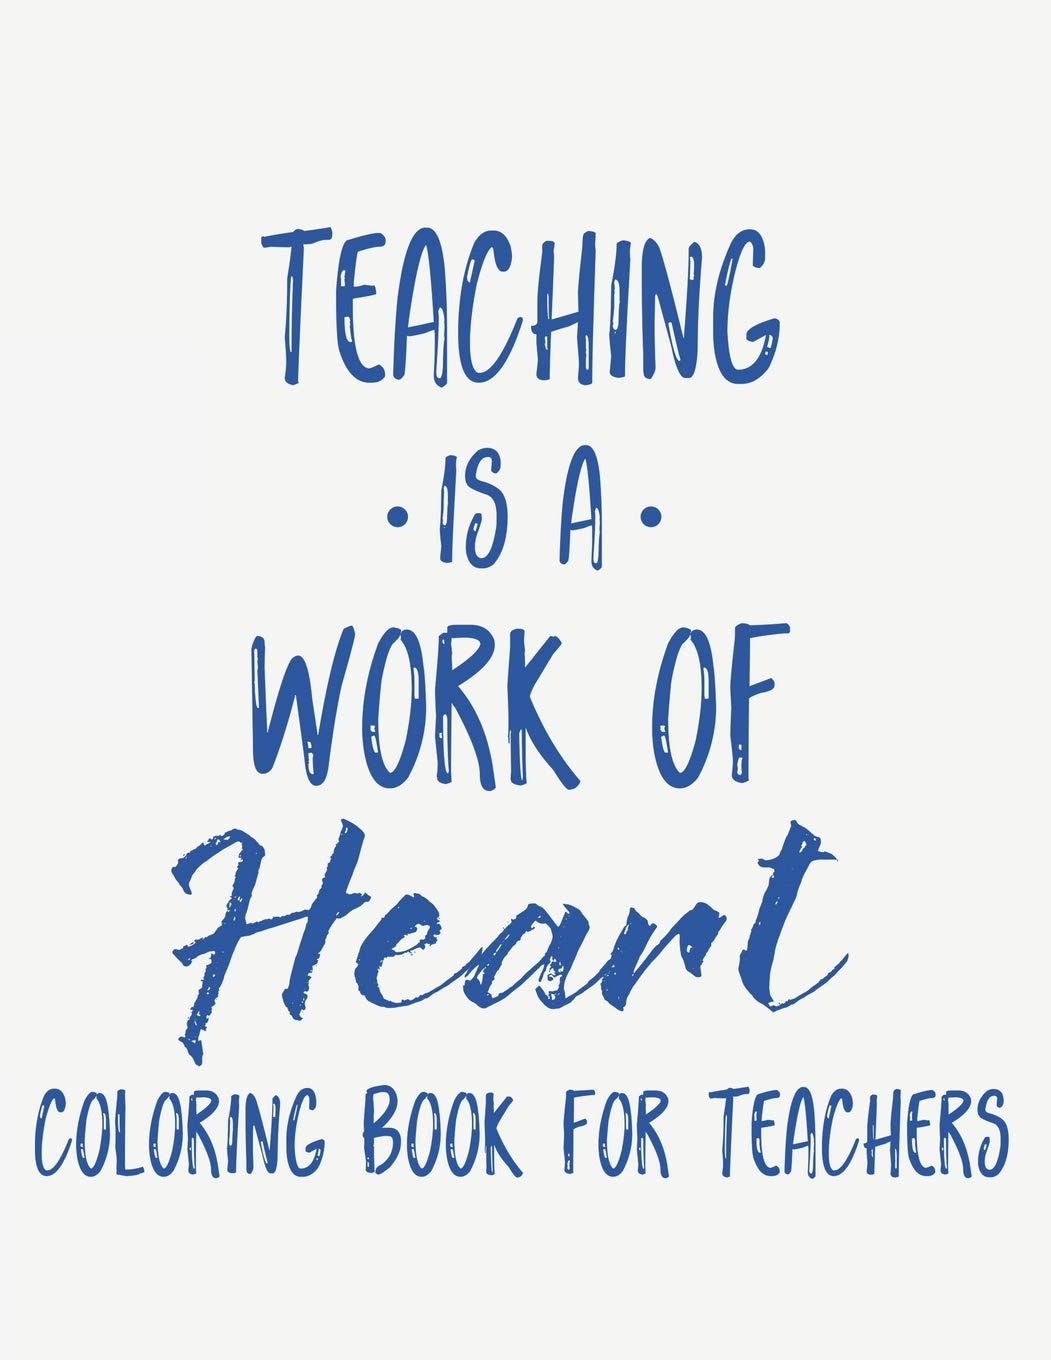 Amazon Com Teaching Is A Work Of Heart Coloring Book For Teachers Teacher Appreciation Coloring Book With Motivational Quotes Relaxing Coloring Pages To Inspire Educators 9798681162926 Parkes Kay Books